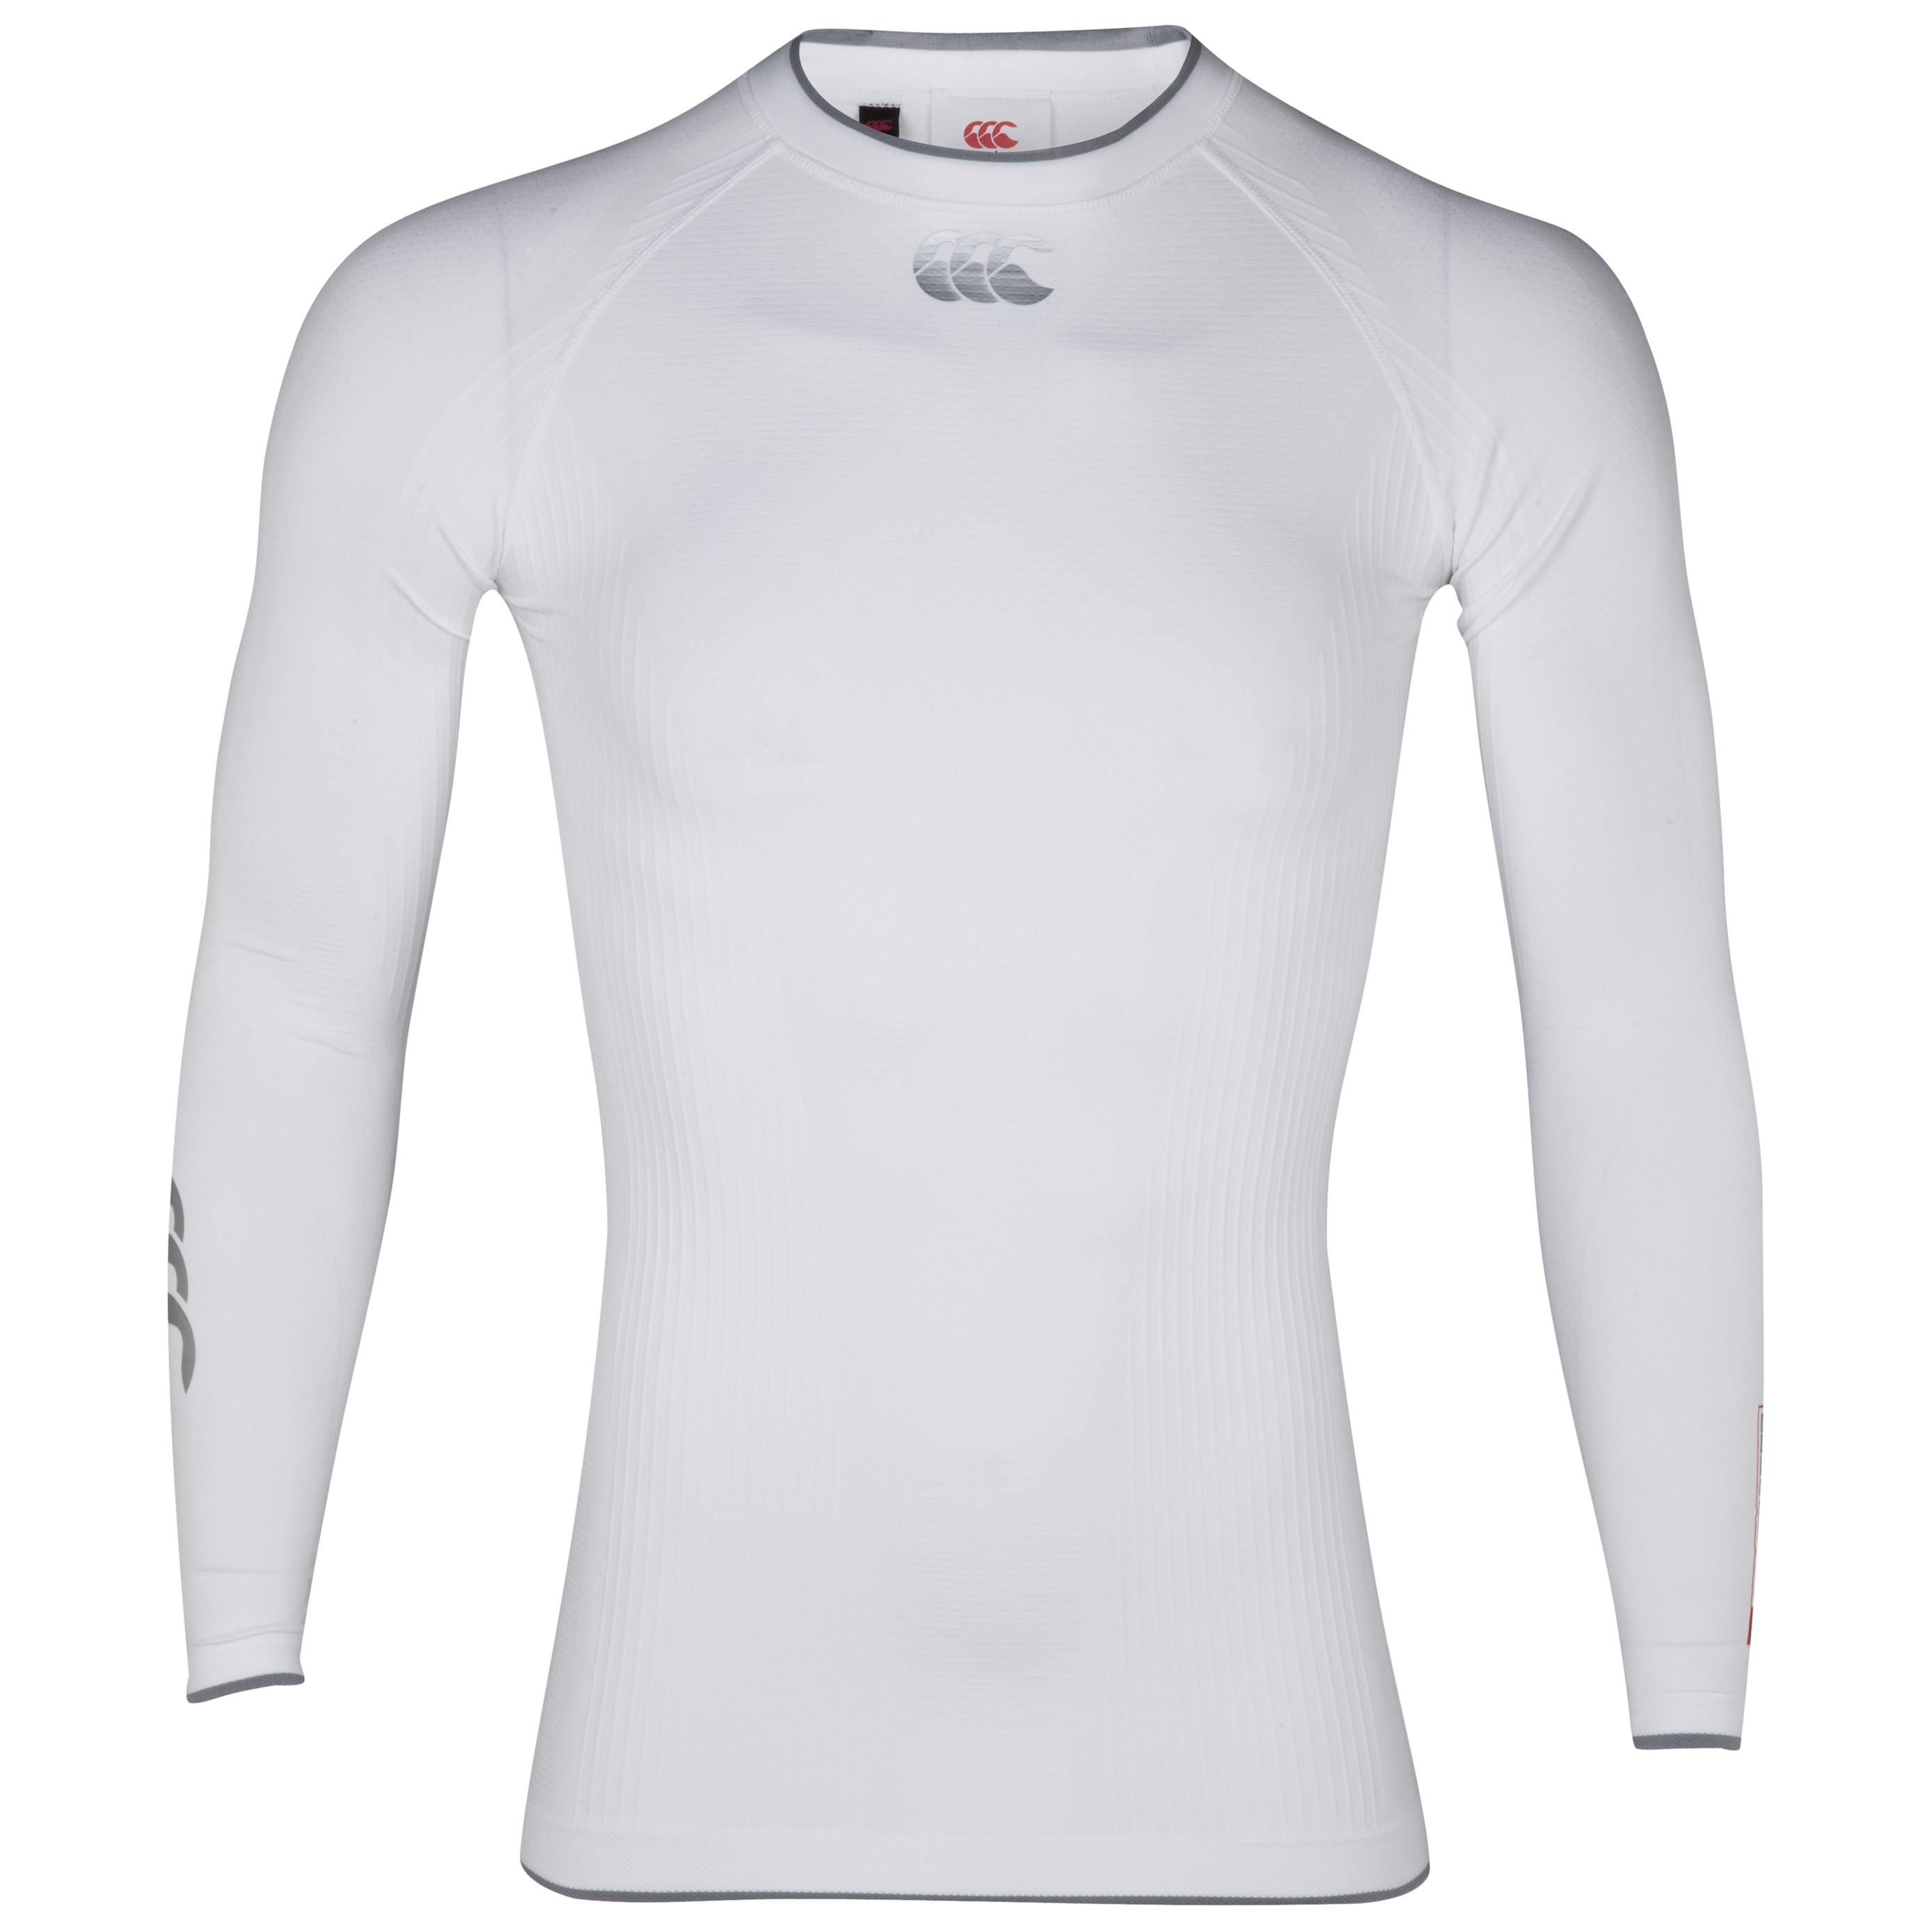 Canterbury iD Top - Long Sleeve - White/Black